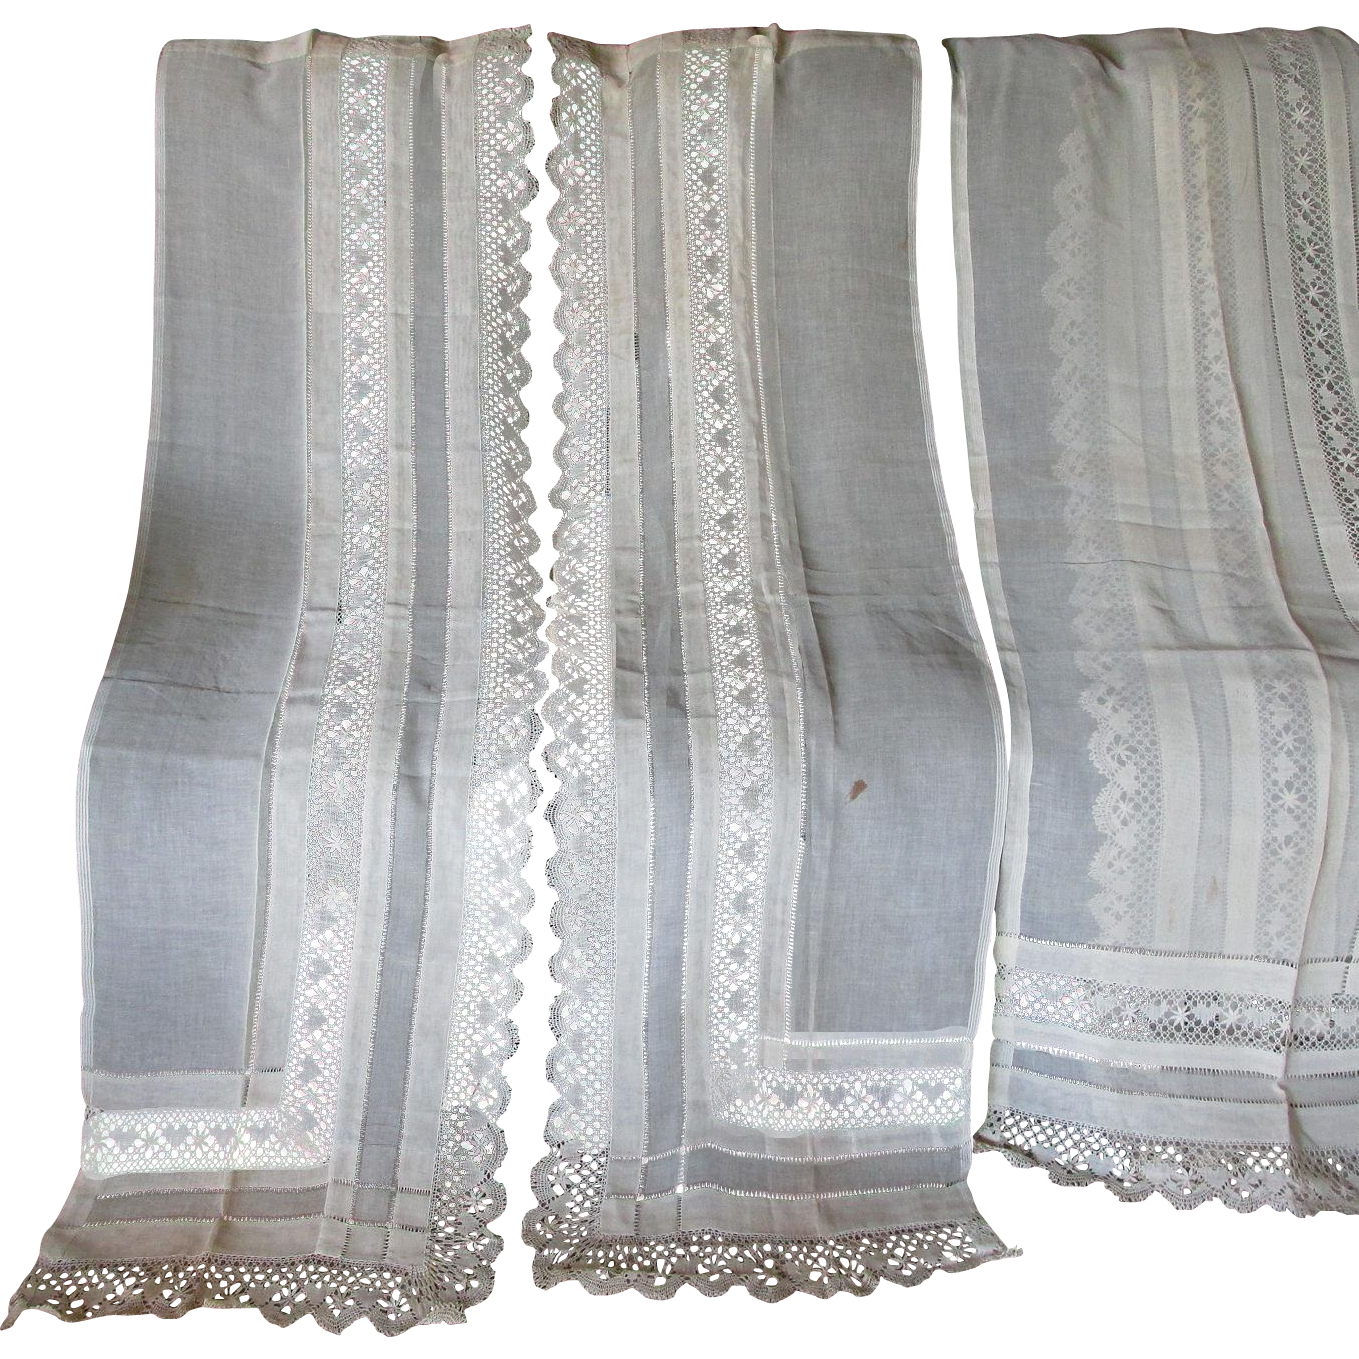 4 Panels Hand Made Lace & Drawn Work Linen Curtains